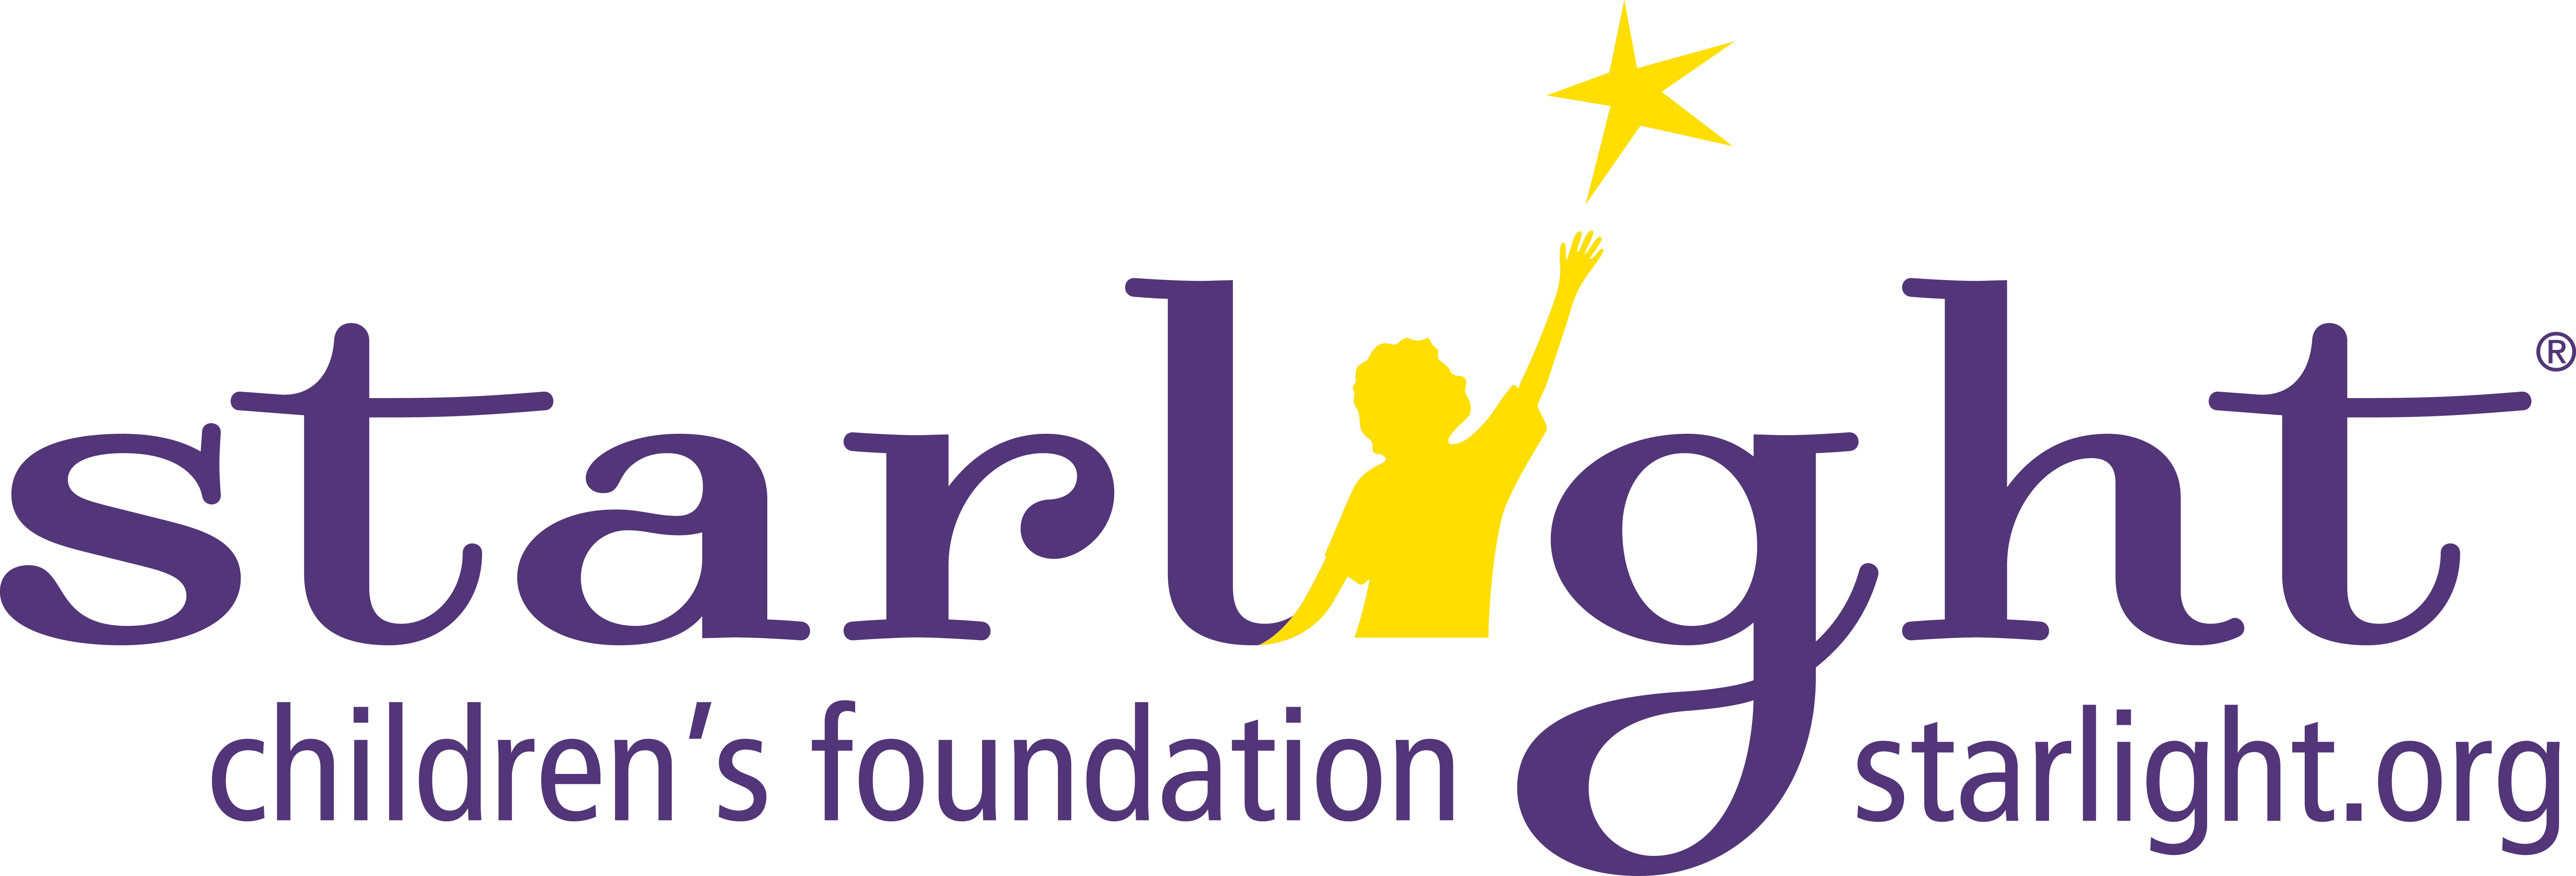 Starlight Children's Foundation Interns Logo